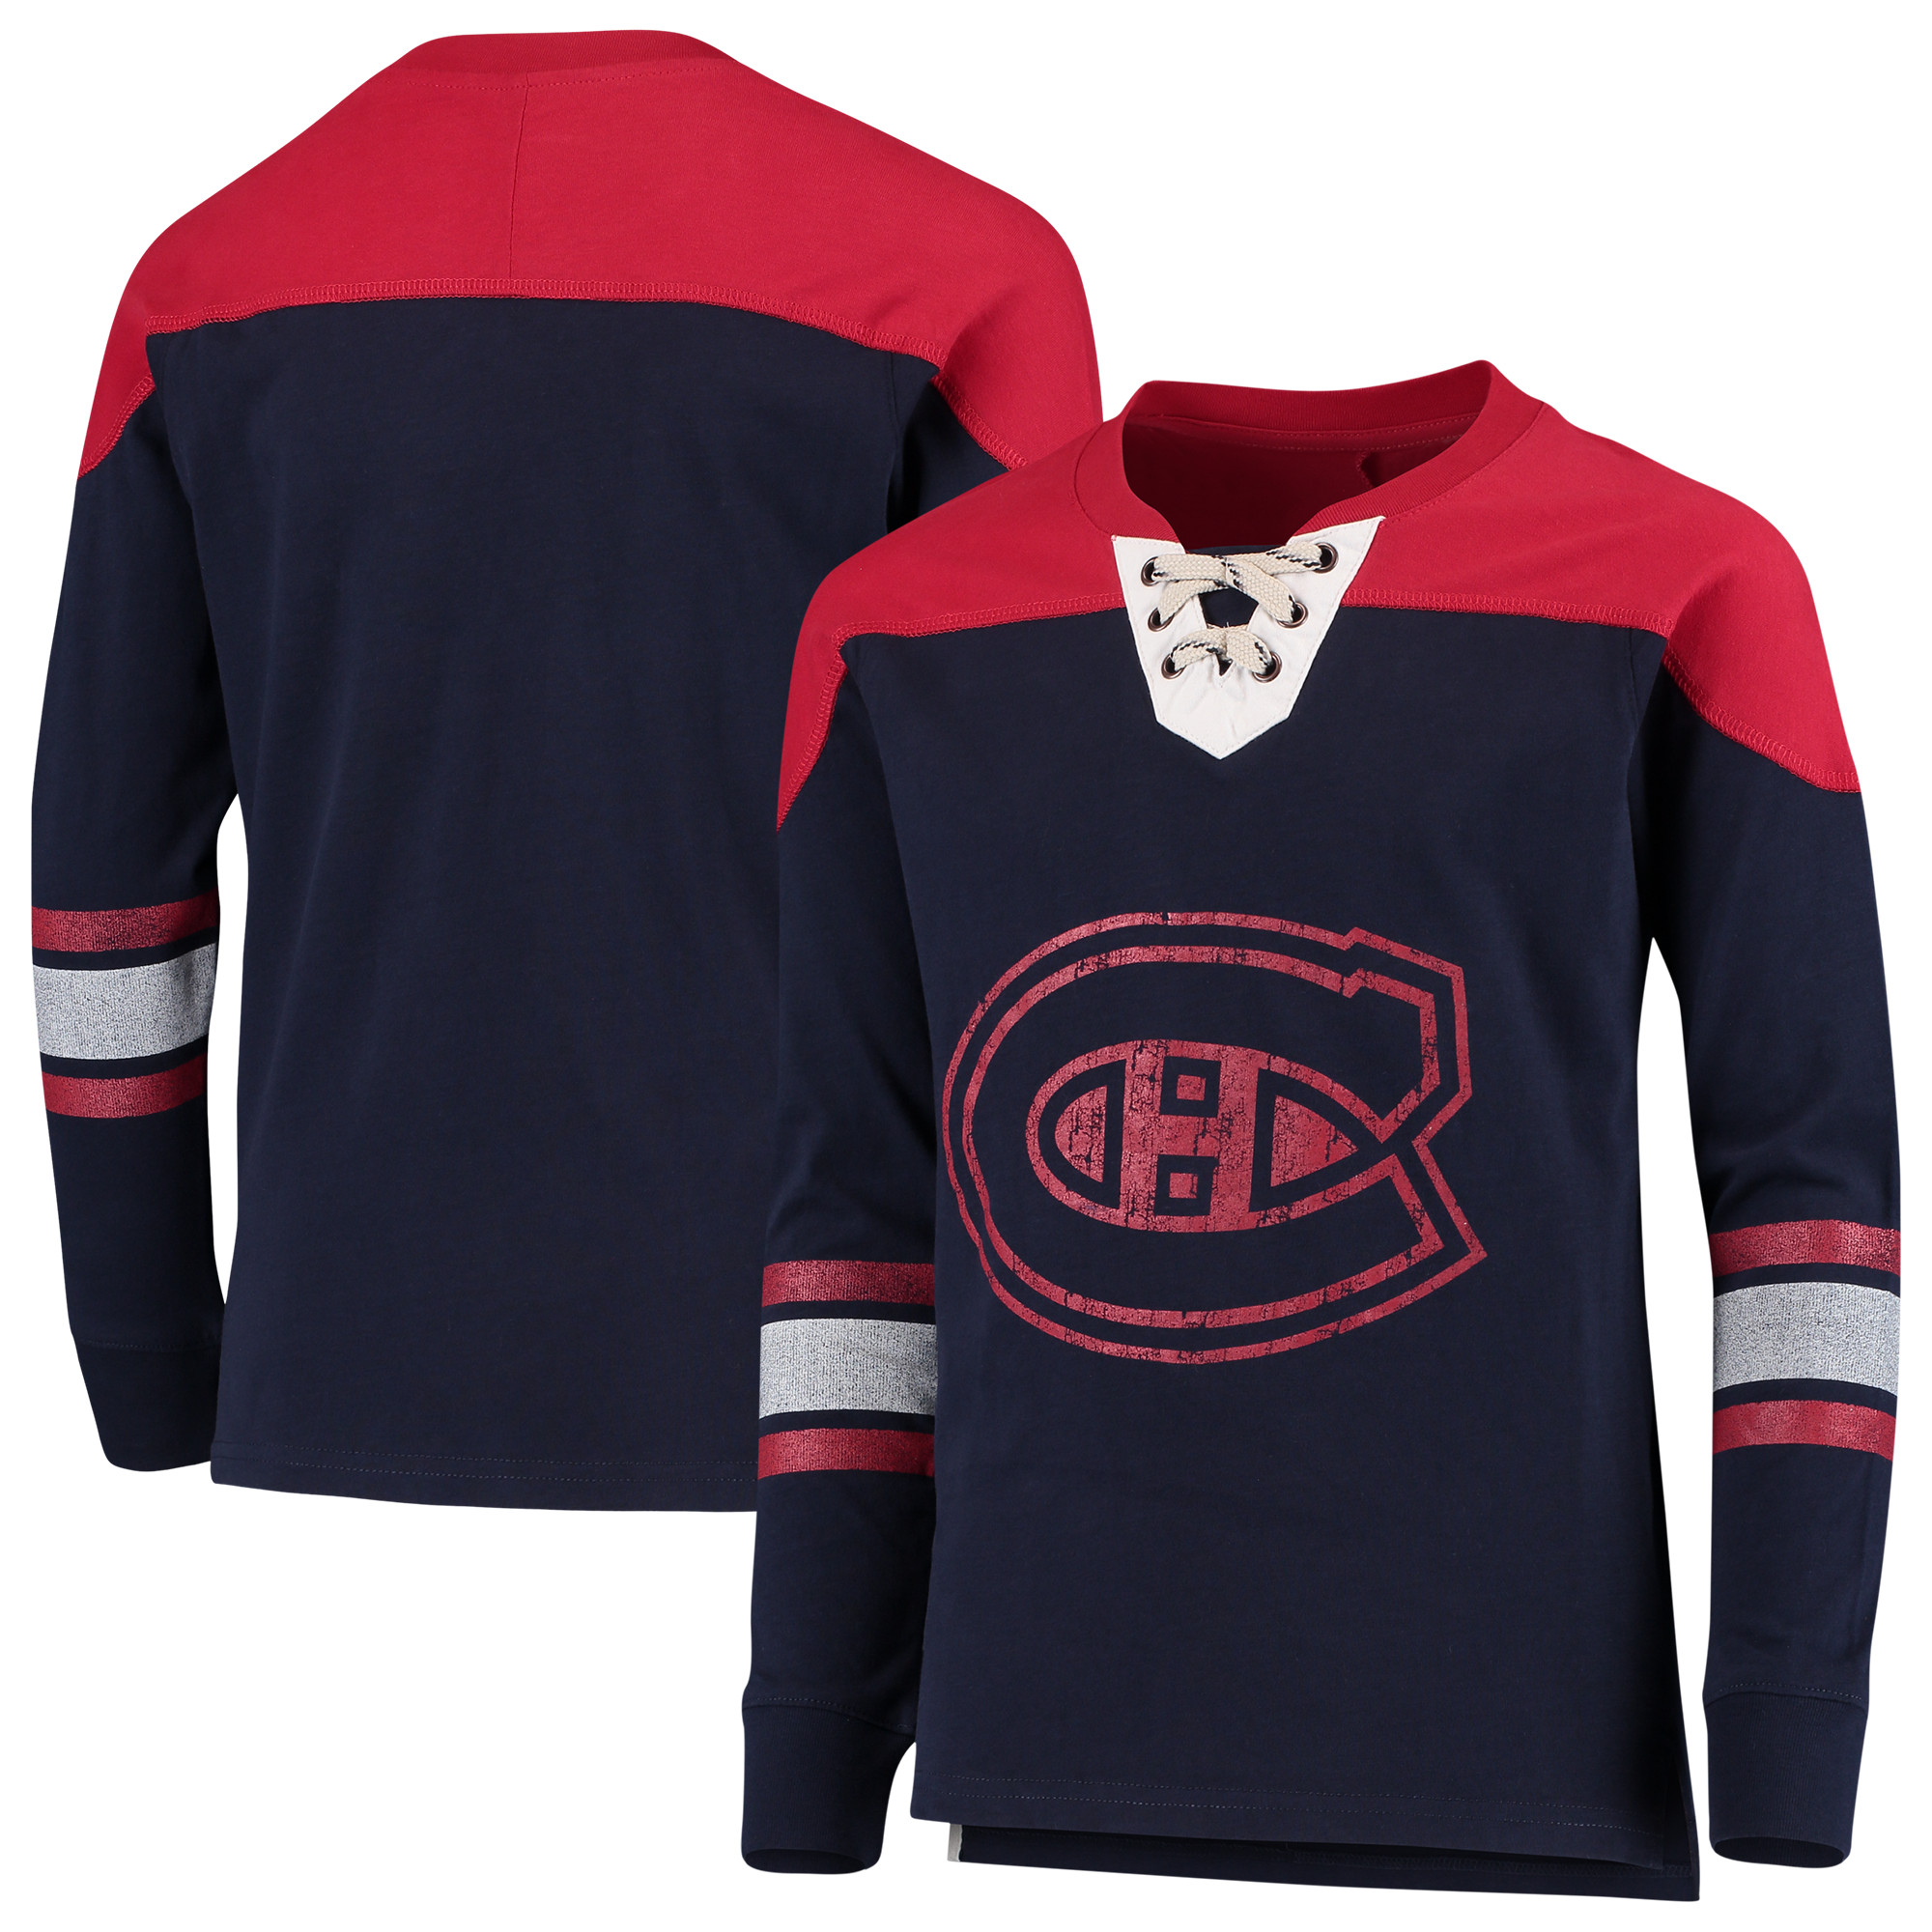 Montreal Canadiens Youth Perennial Hockey Lace-Up Crew Sweatshirt - Navy/Red